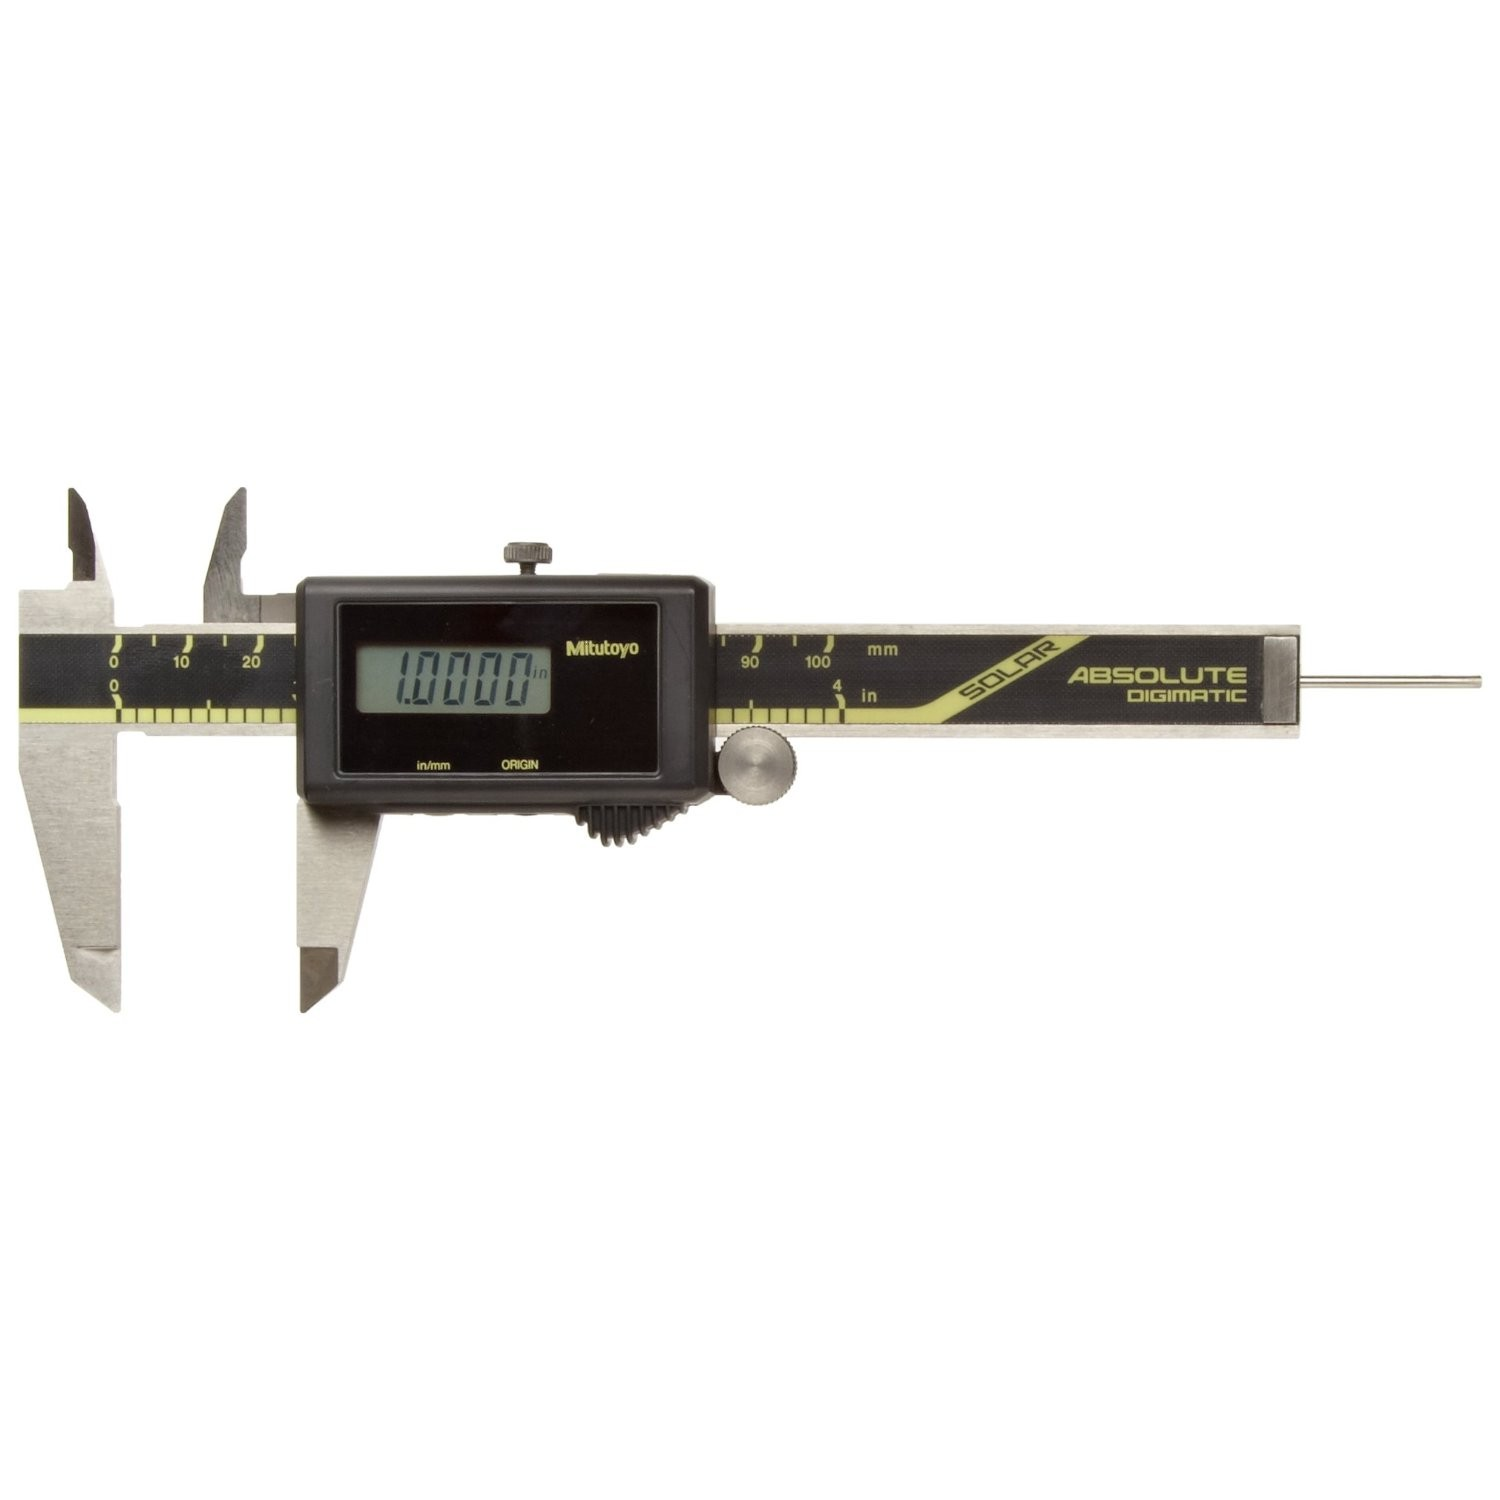 Mitutoyo 500-463 ABSOLUTE Solar Caliper with SPC output